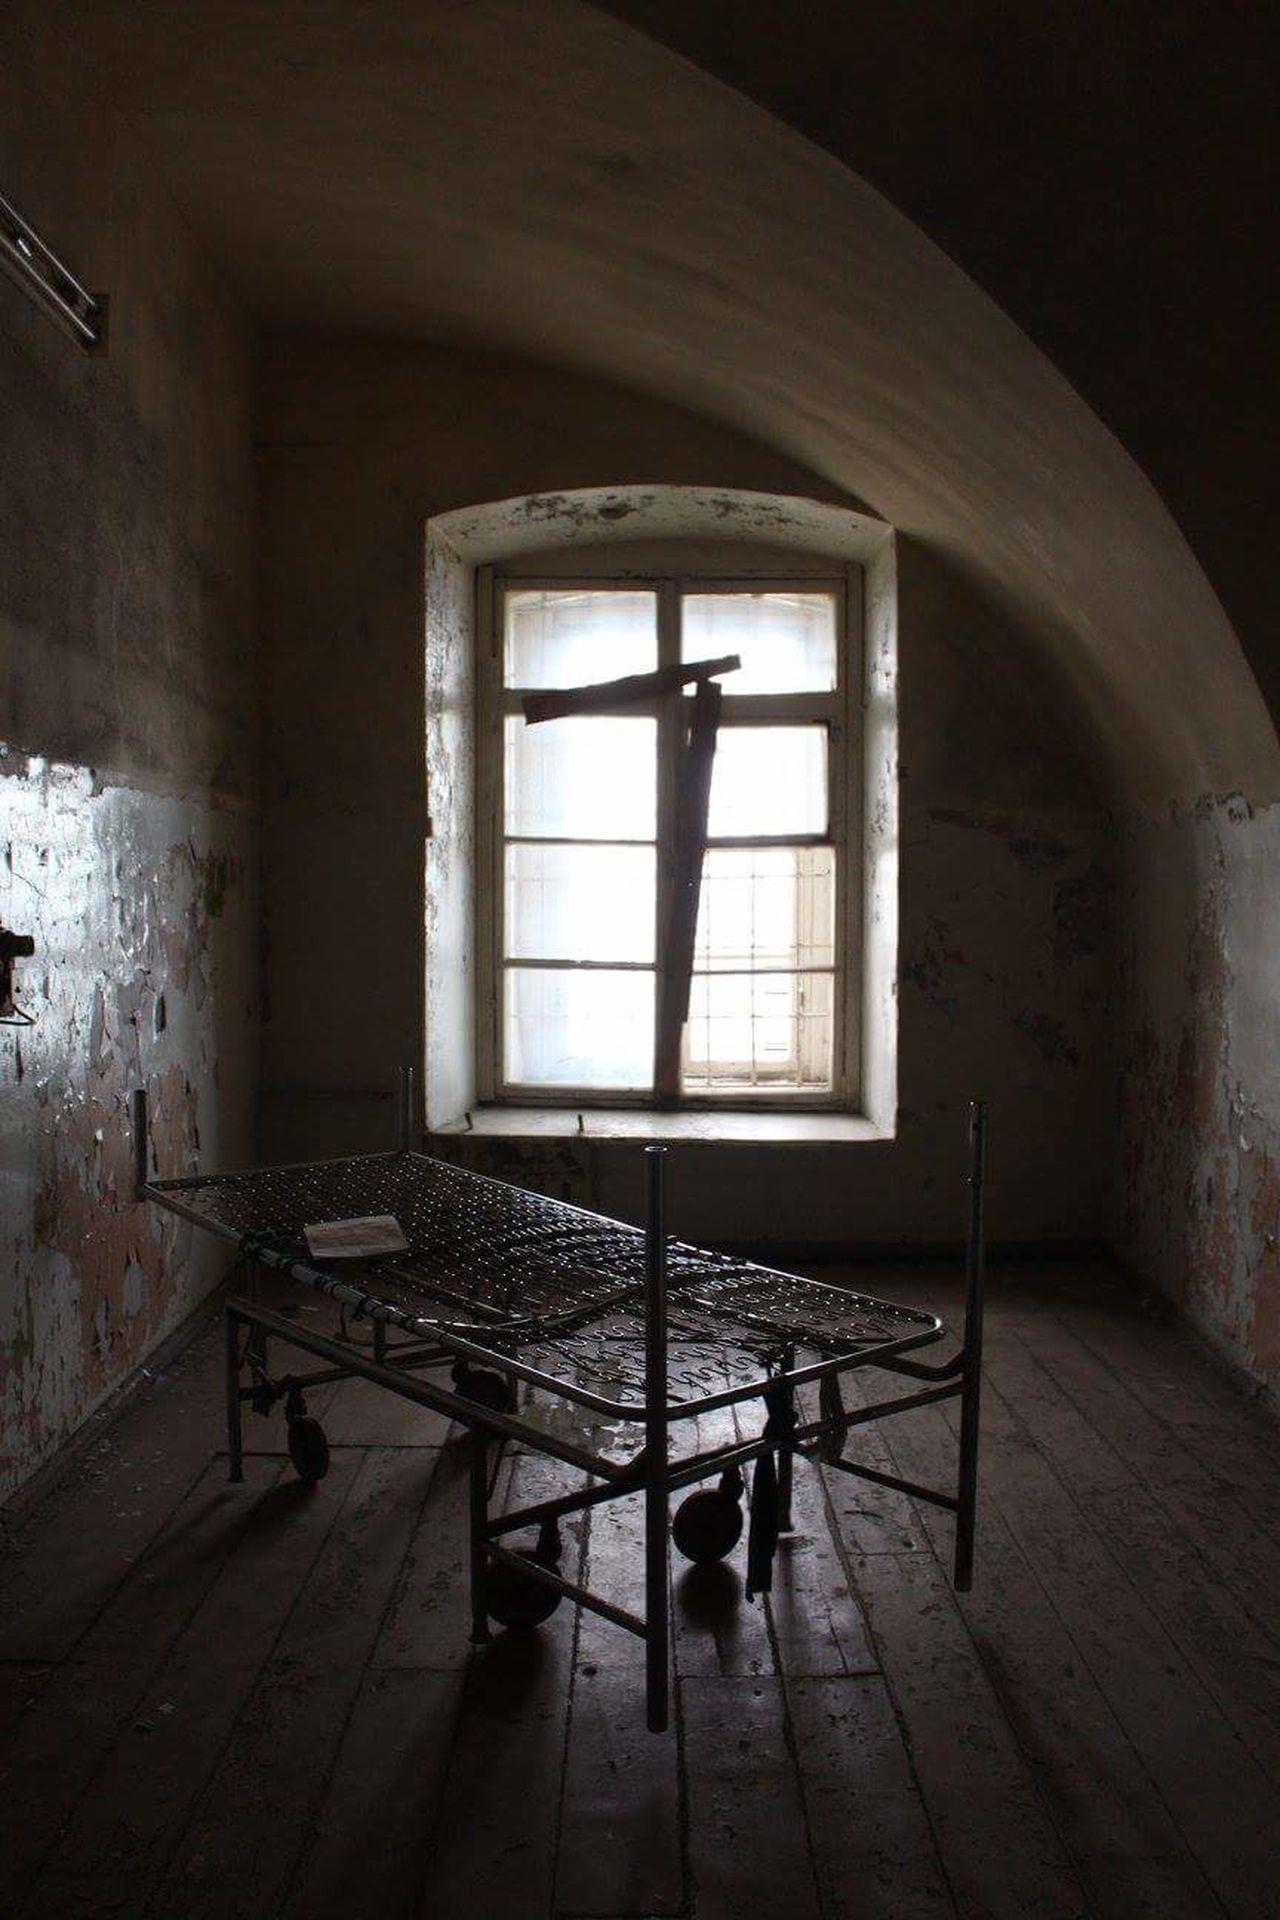 My Year My View exploring old soviet prison Prison Patarei Soviet Tallinn Estonia Tallinn Estonia Bed Window Indoors  Abandoned No People Bad Condition Architecture Contrast Tallinn Old Town Soviet Era Prison Museum